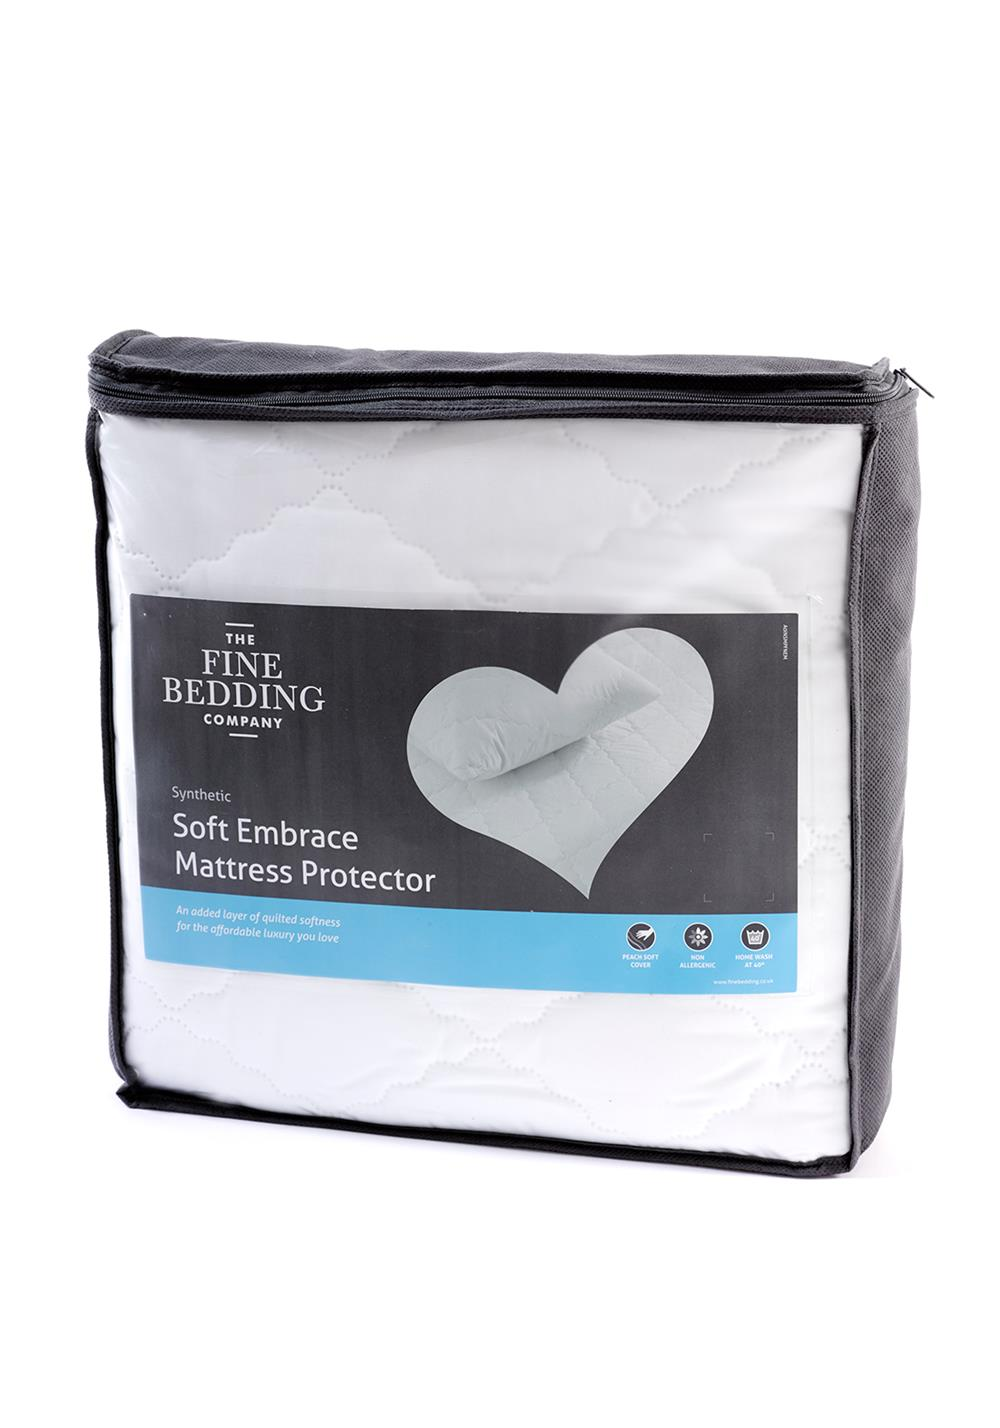 The Fine Bedding Company Soft Embrace Mattress Protector